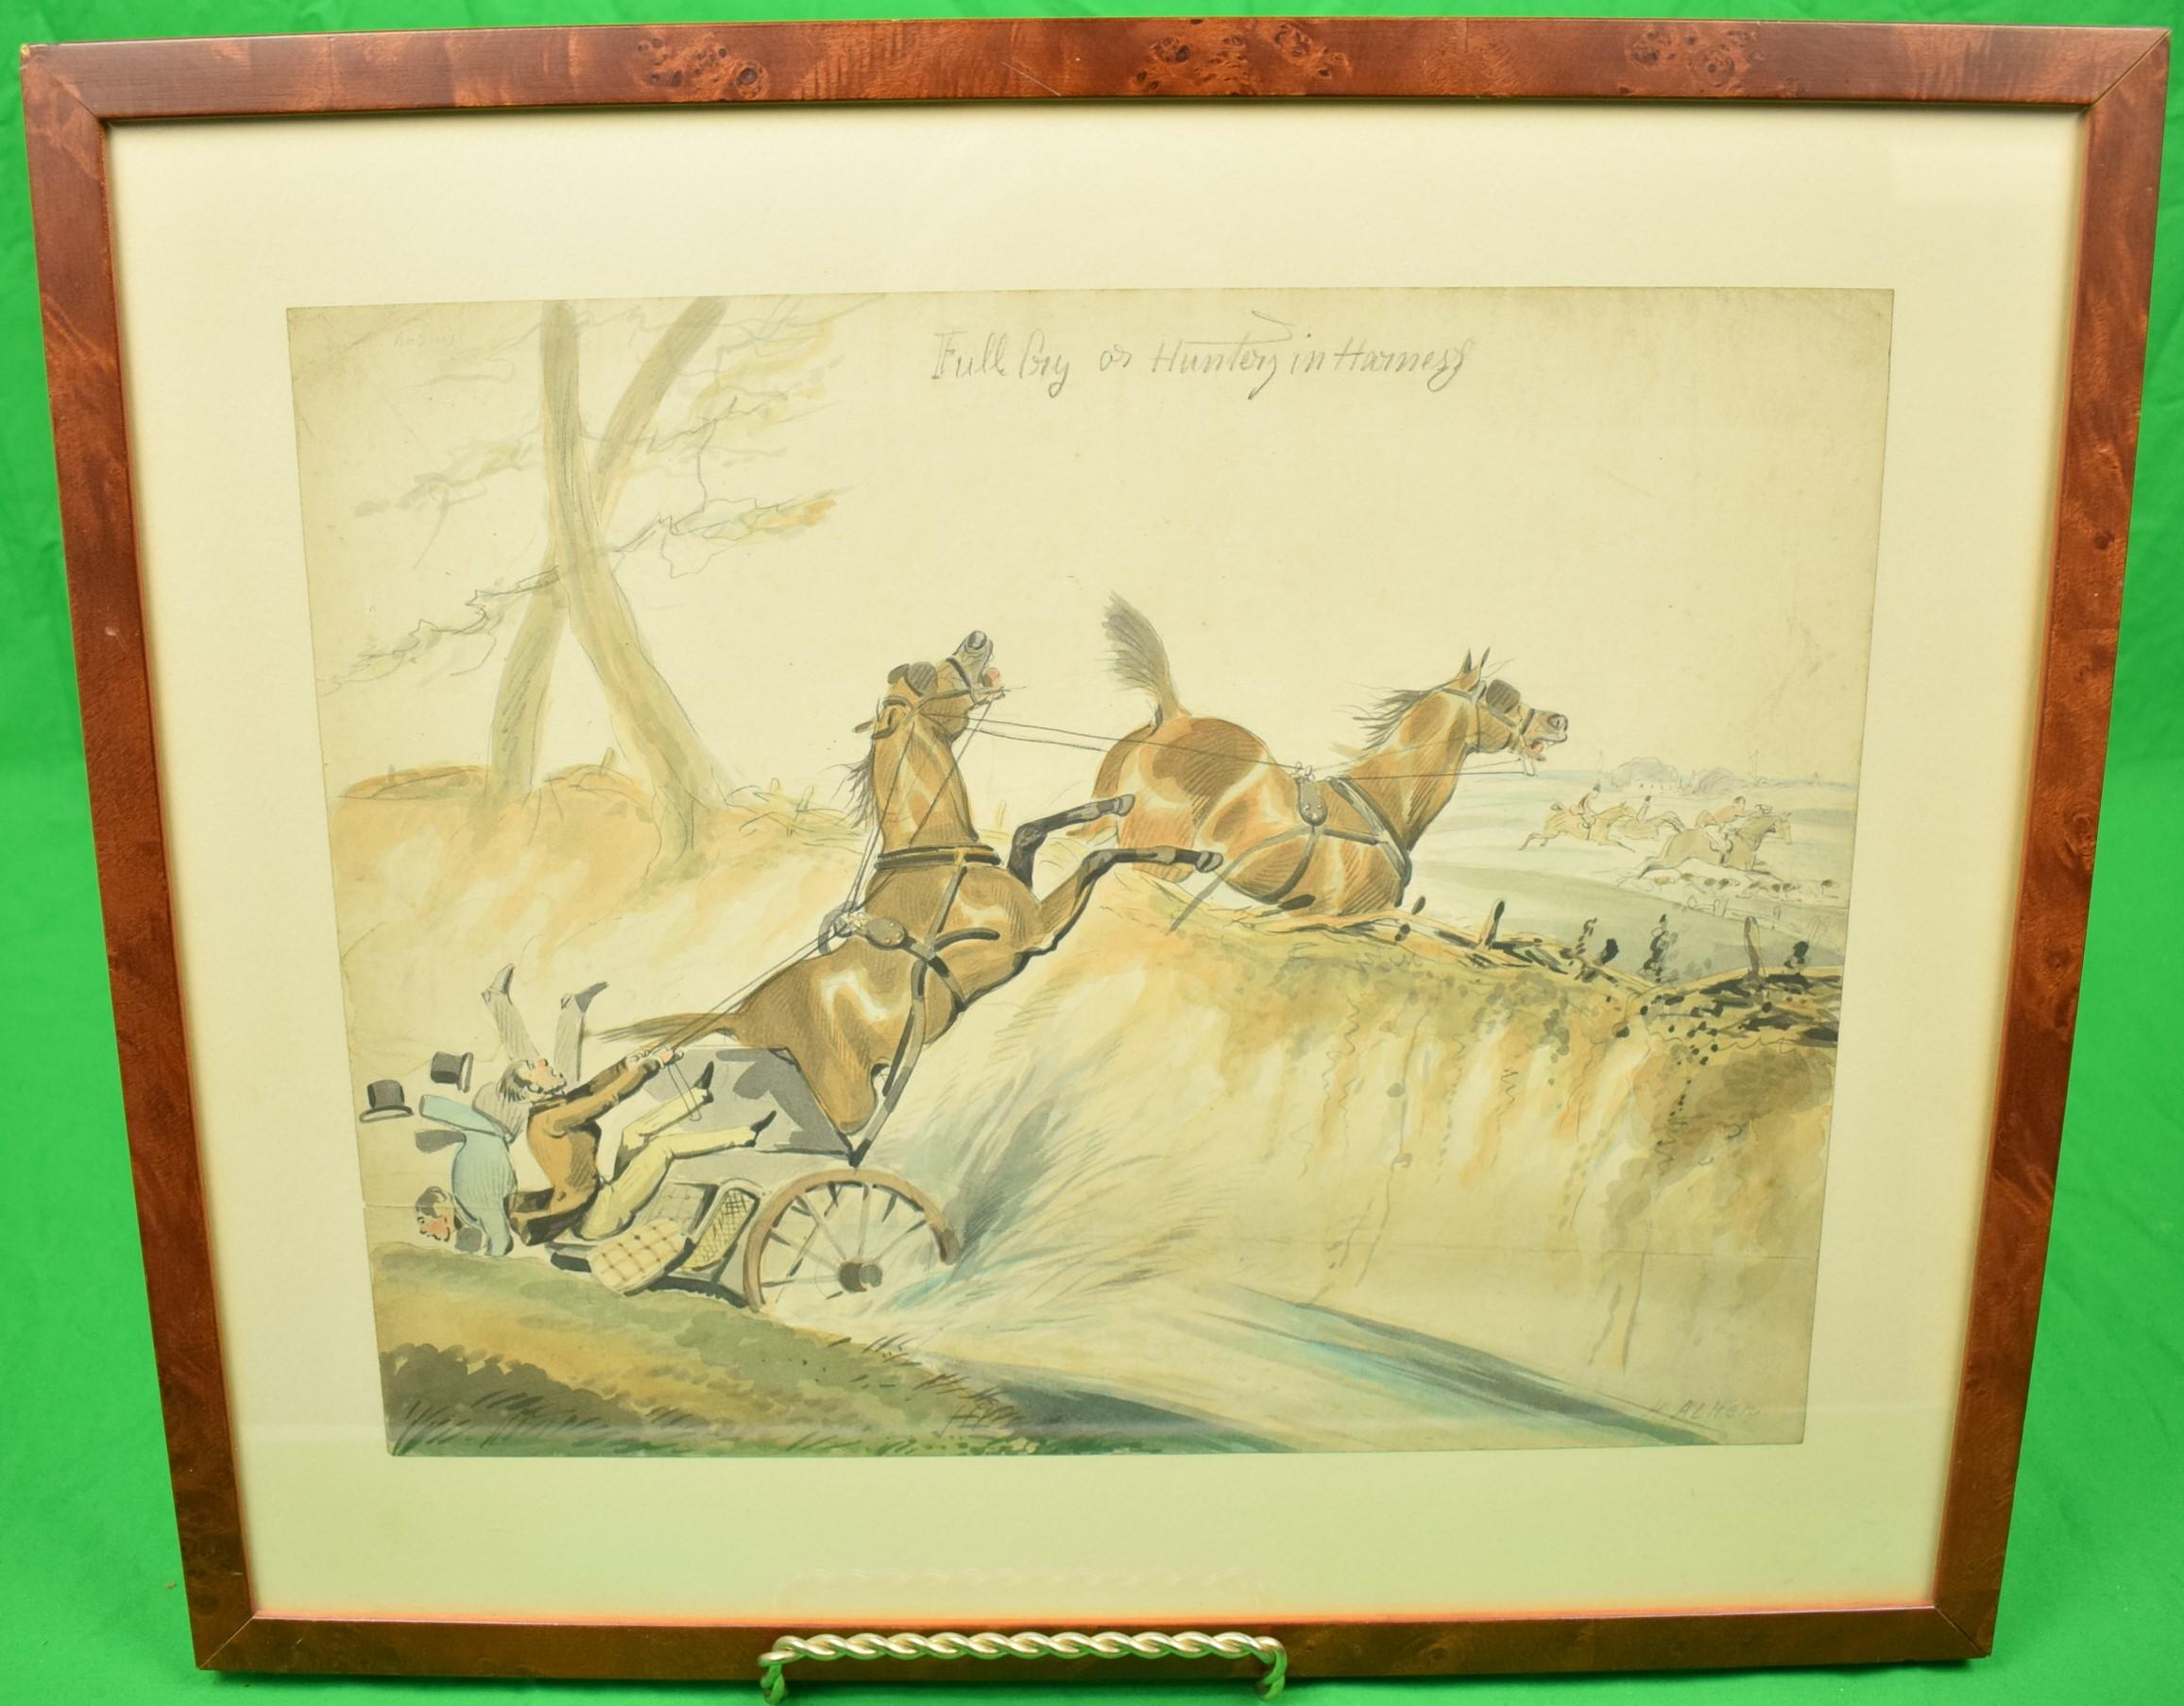 """""""Full Cry or Hunter's and Harness"""" Watercolour by Henry Alken"""